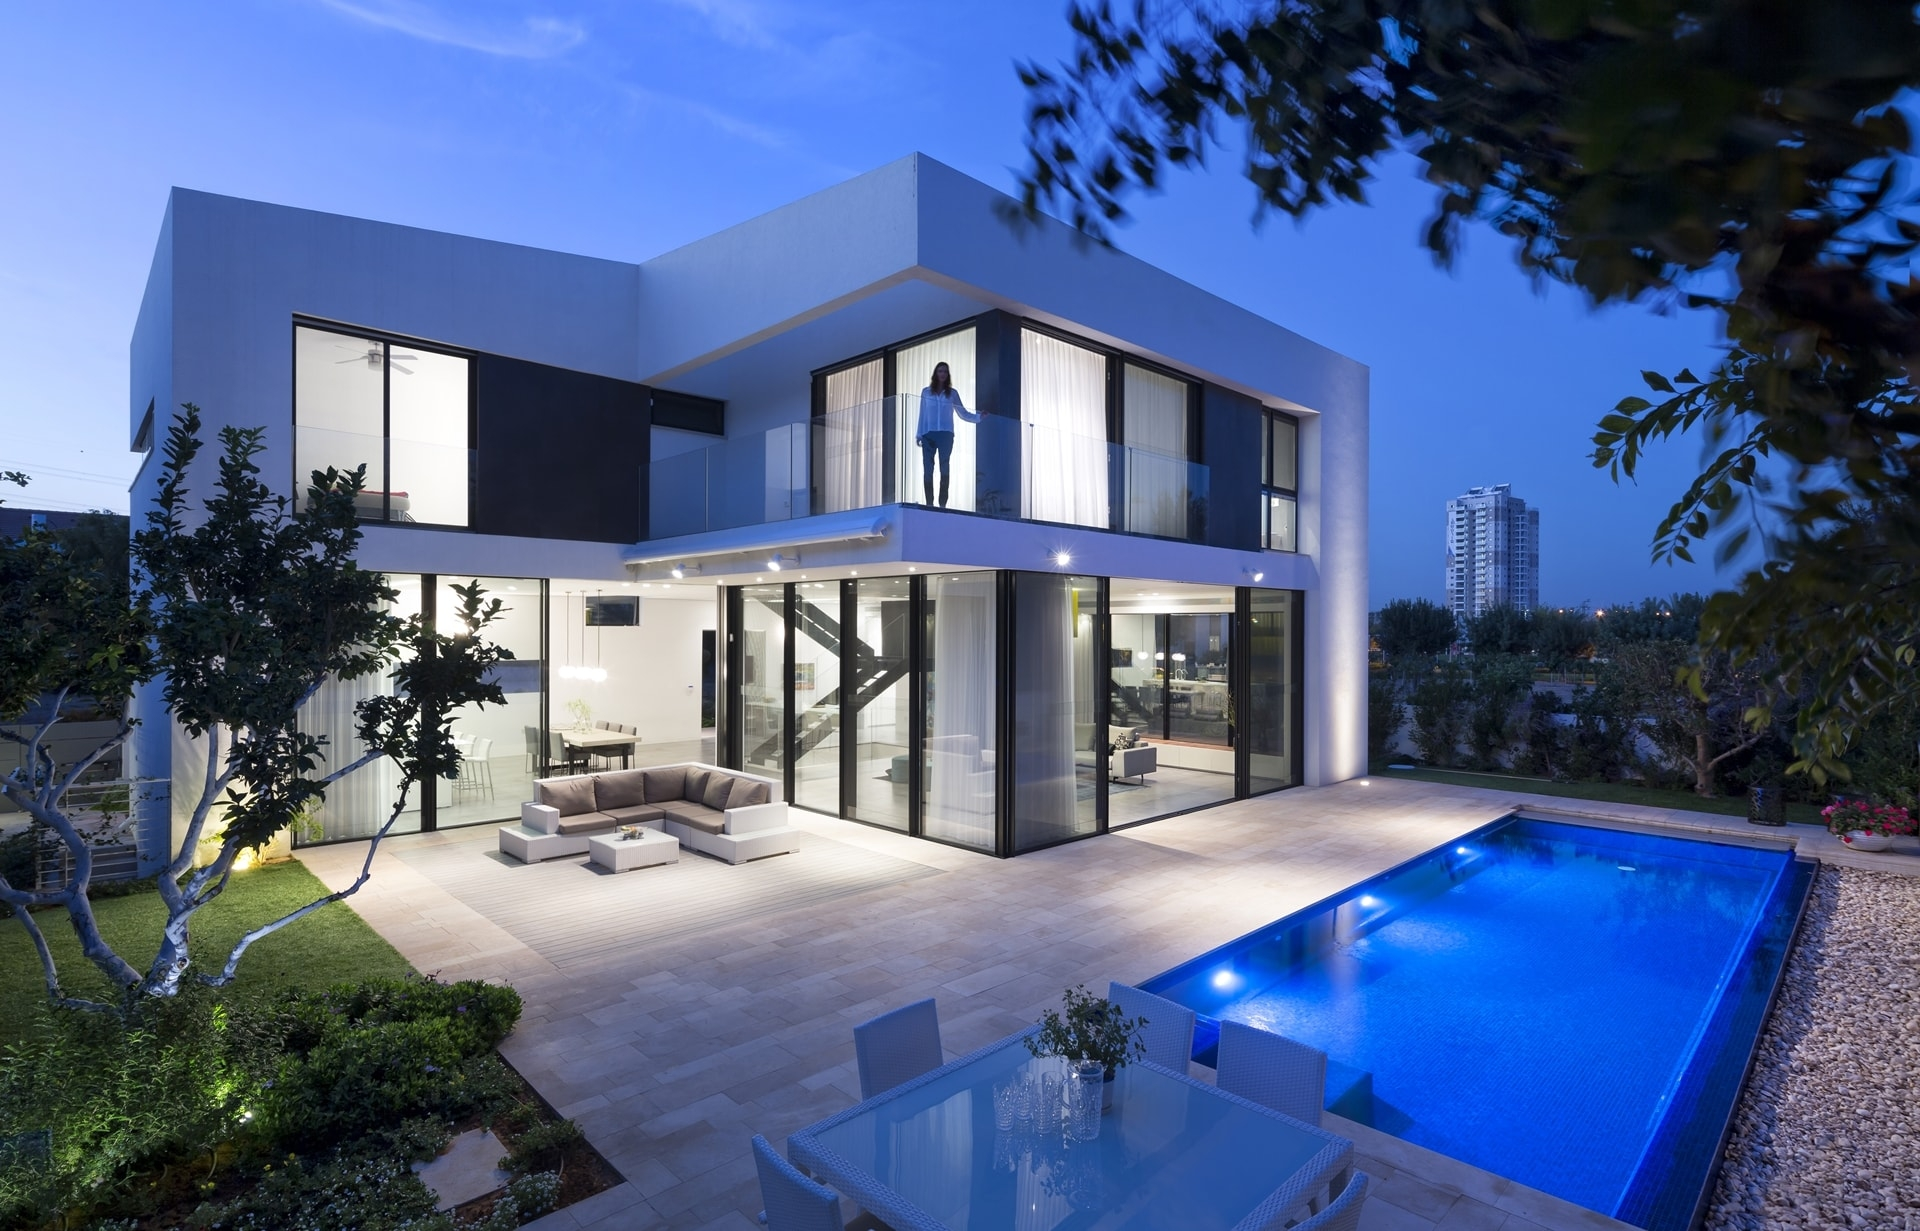 Simple Modern House With An Amazing Floating Stairs   Simple Stairs Design For Small House